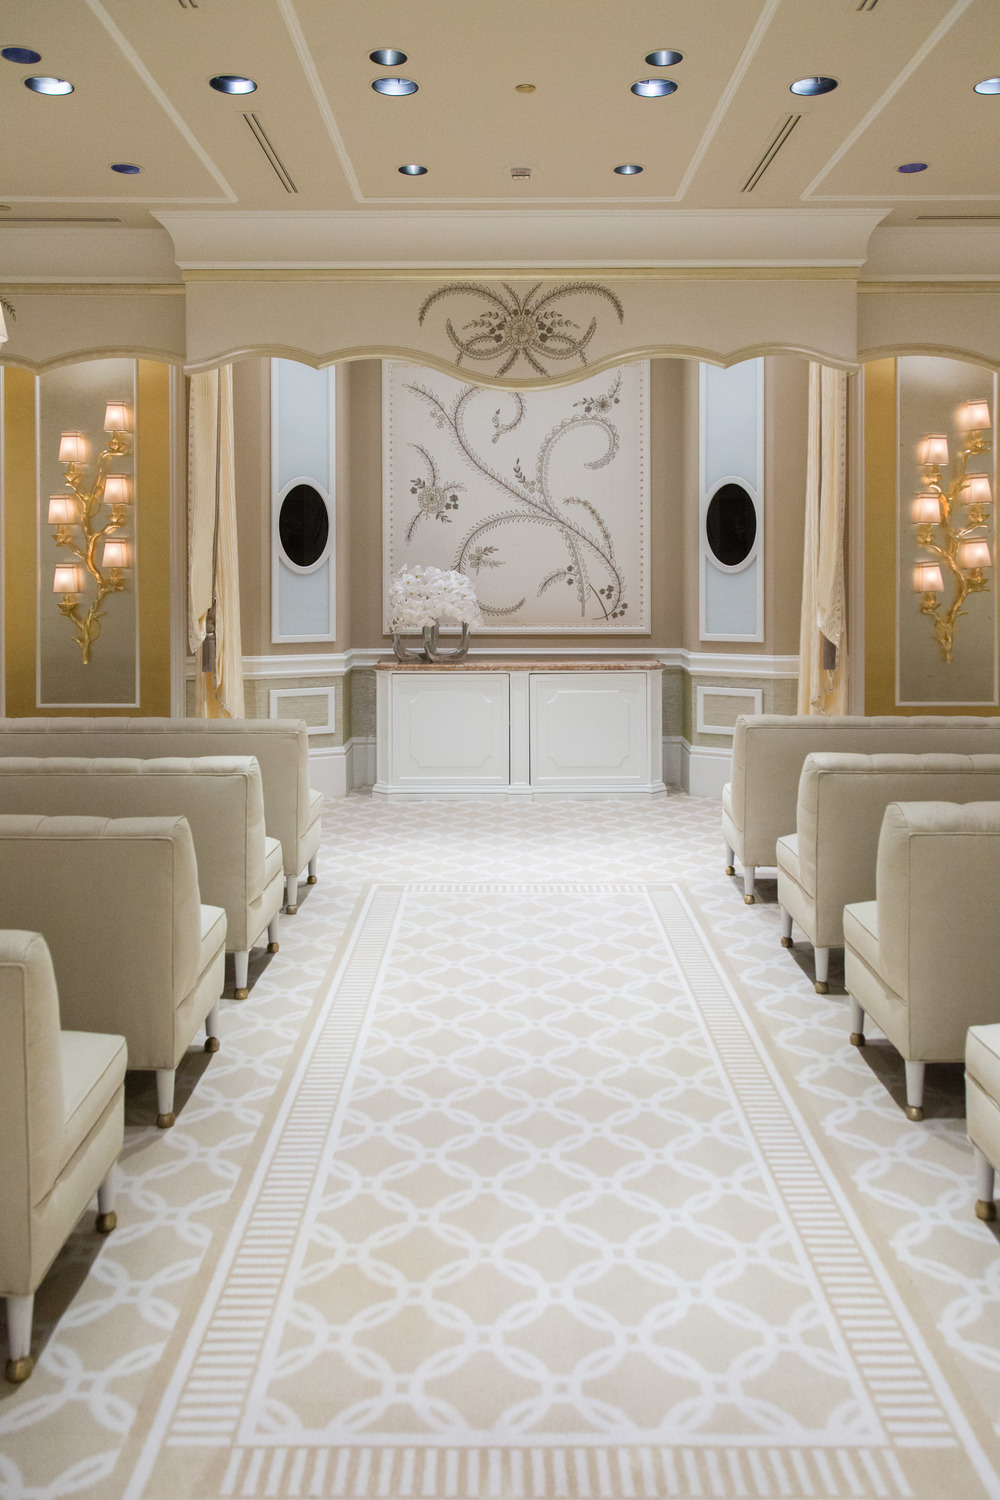 Wynn Hotel's wedding venue, wedding chapel, custom carpet | Photographer: Tori Aston